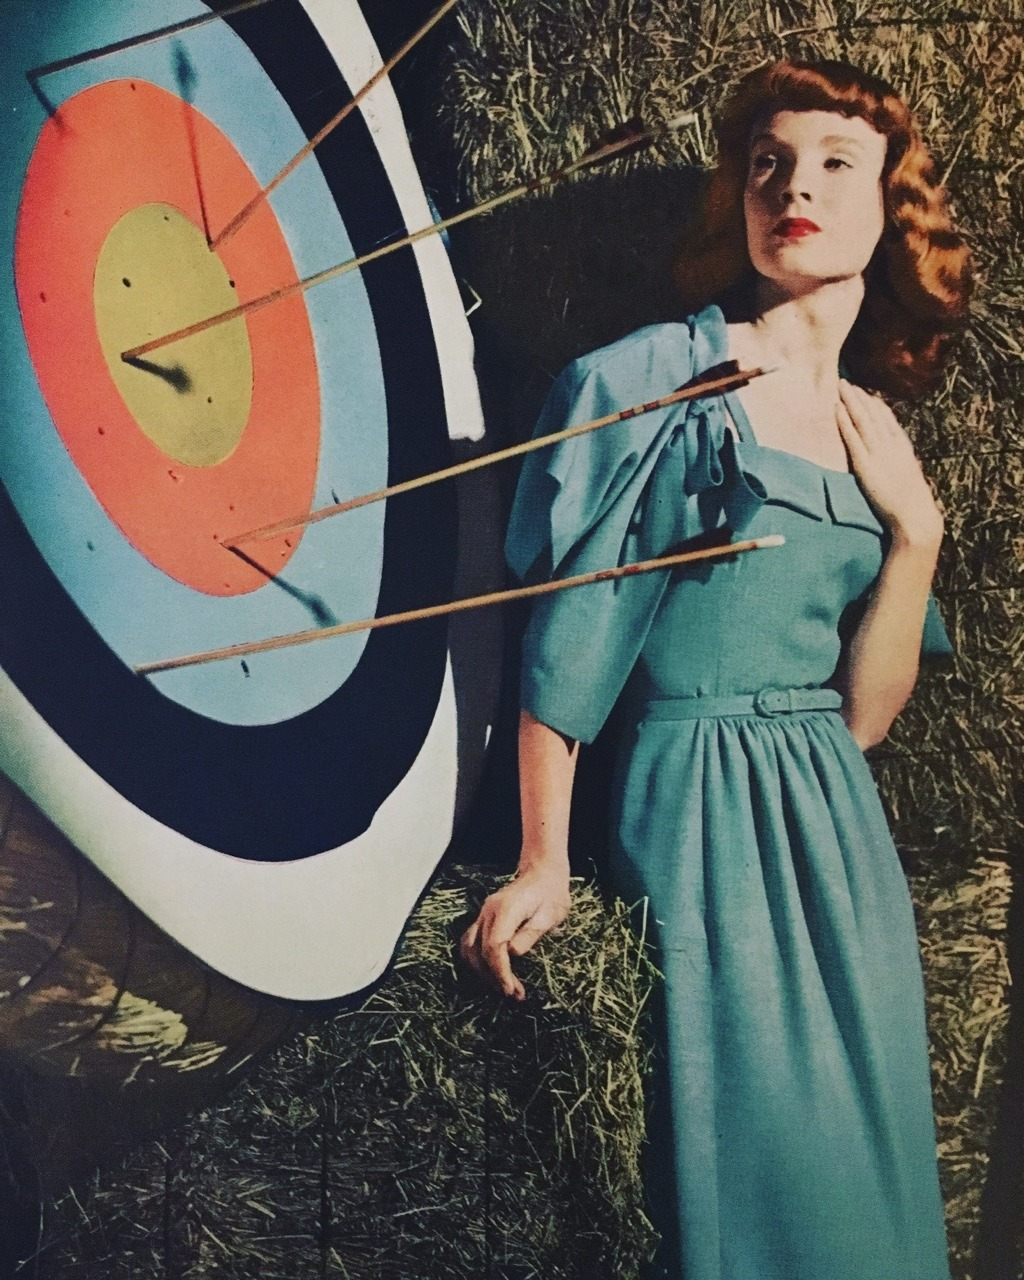 Verney Fabrics.     Vogue. June 1947.     Today's prompt is teal, so here's a lovely teal dress!